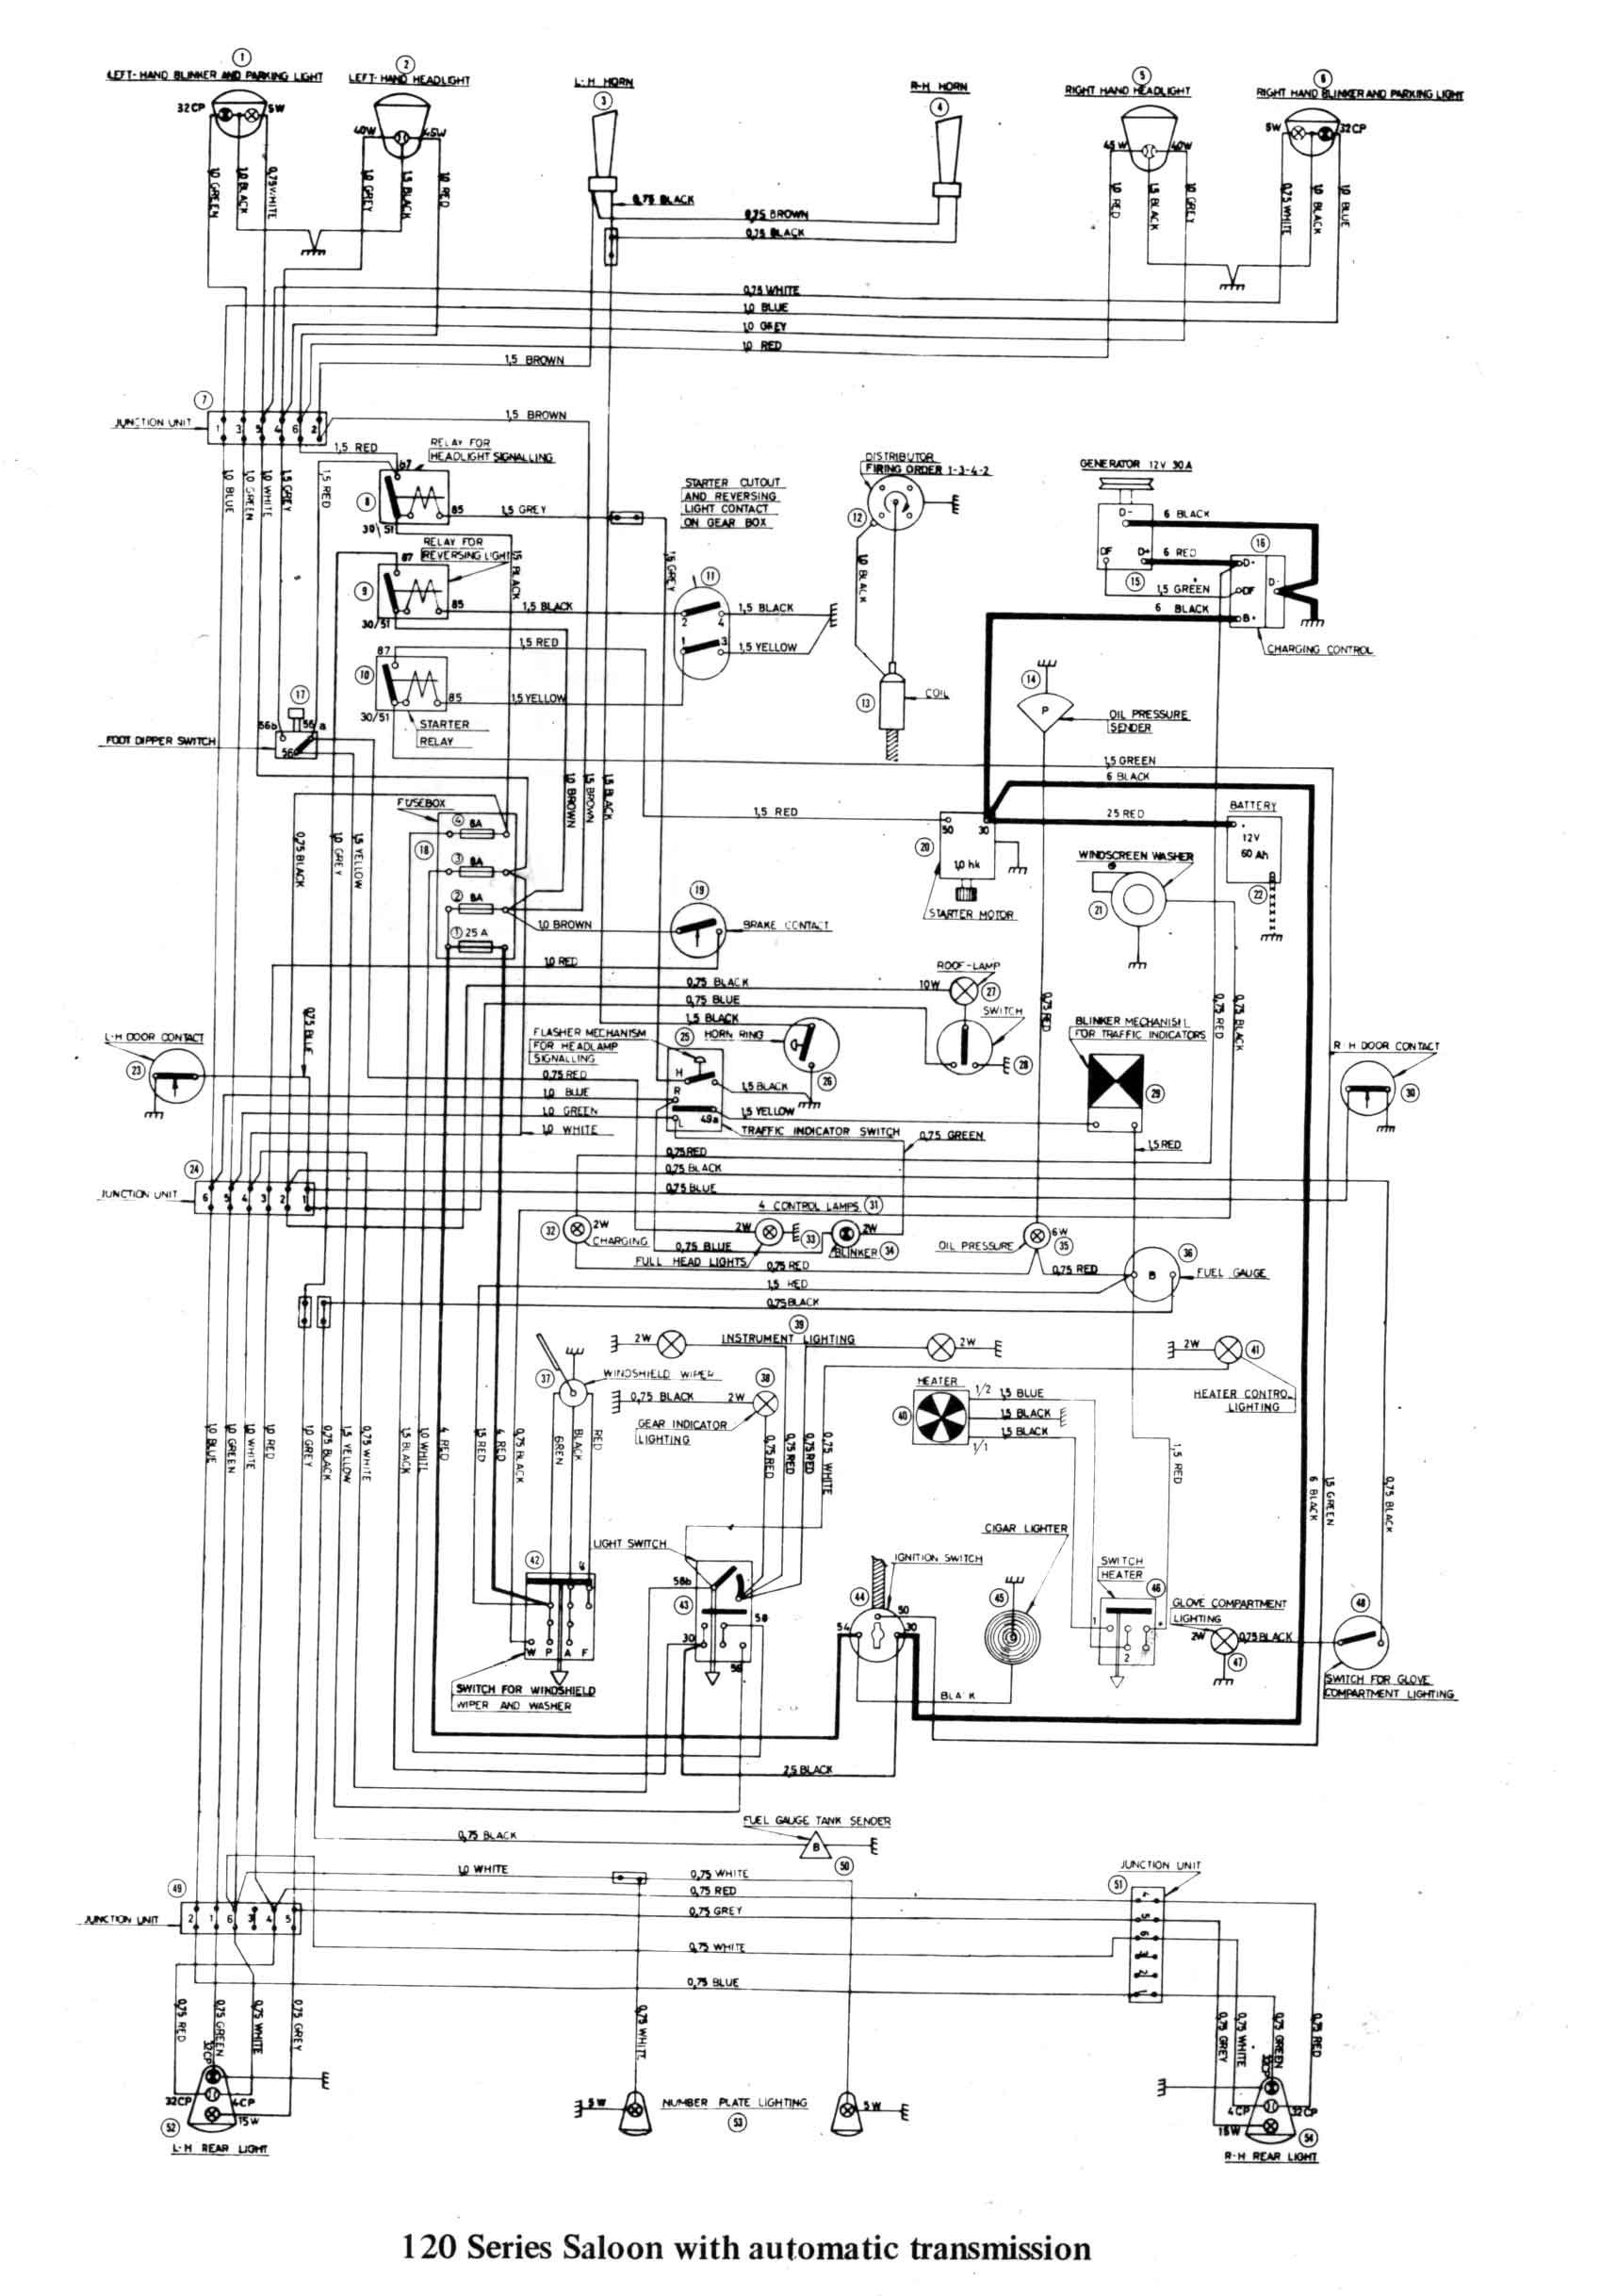 Car Electrical Wiring Diagram Unique Starter Wiring Diagram Diagram Of Car Electrical Wiring Diagram